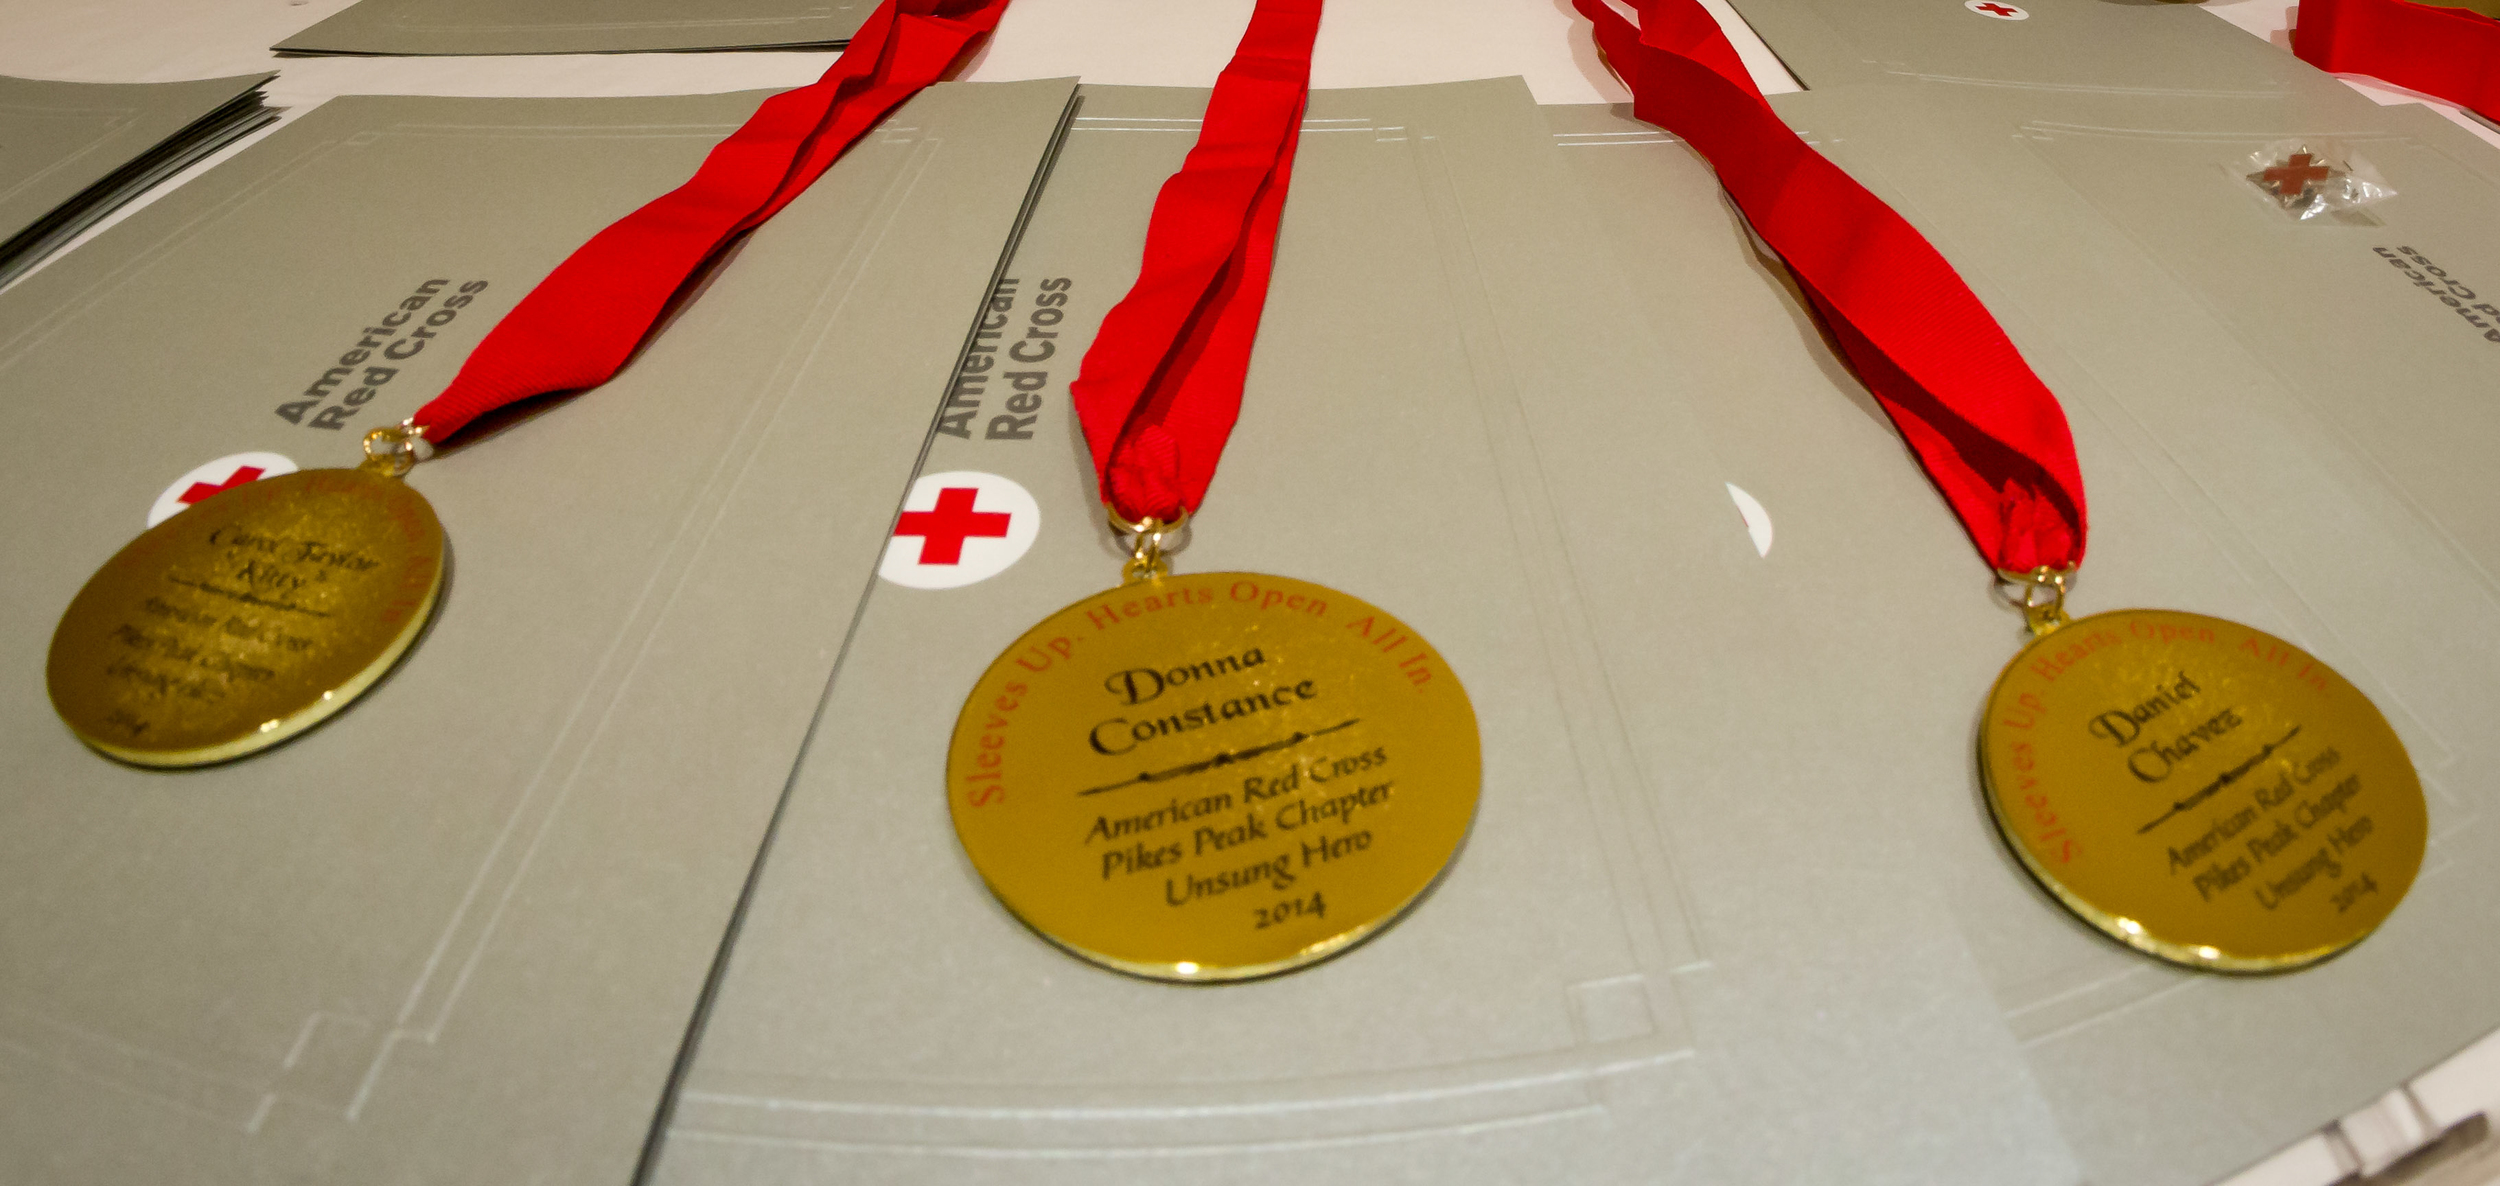 Red Cross Volunteer Recognition Breakfast, 5_9_15_D7K7250-2.JPG